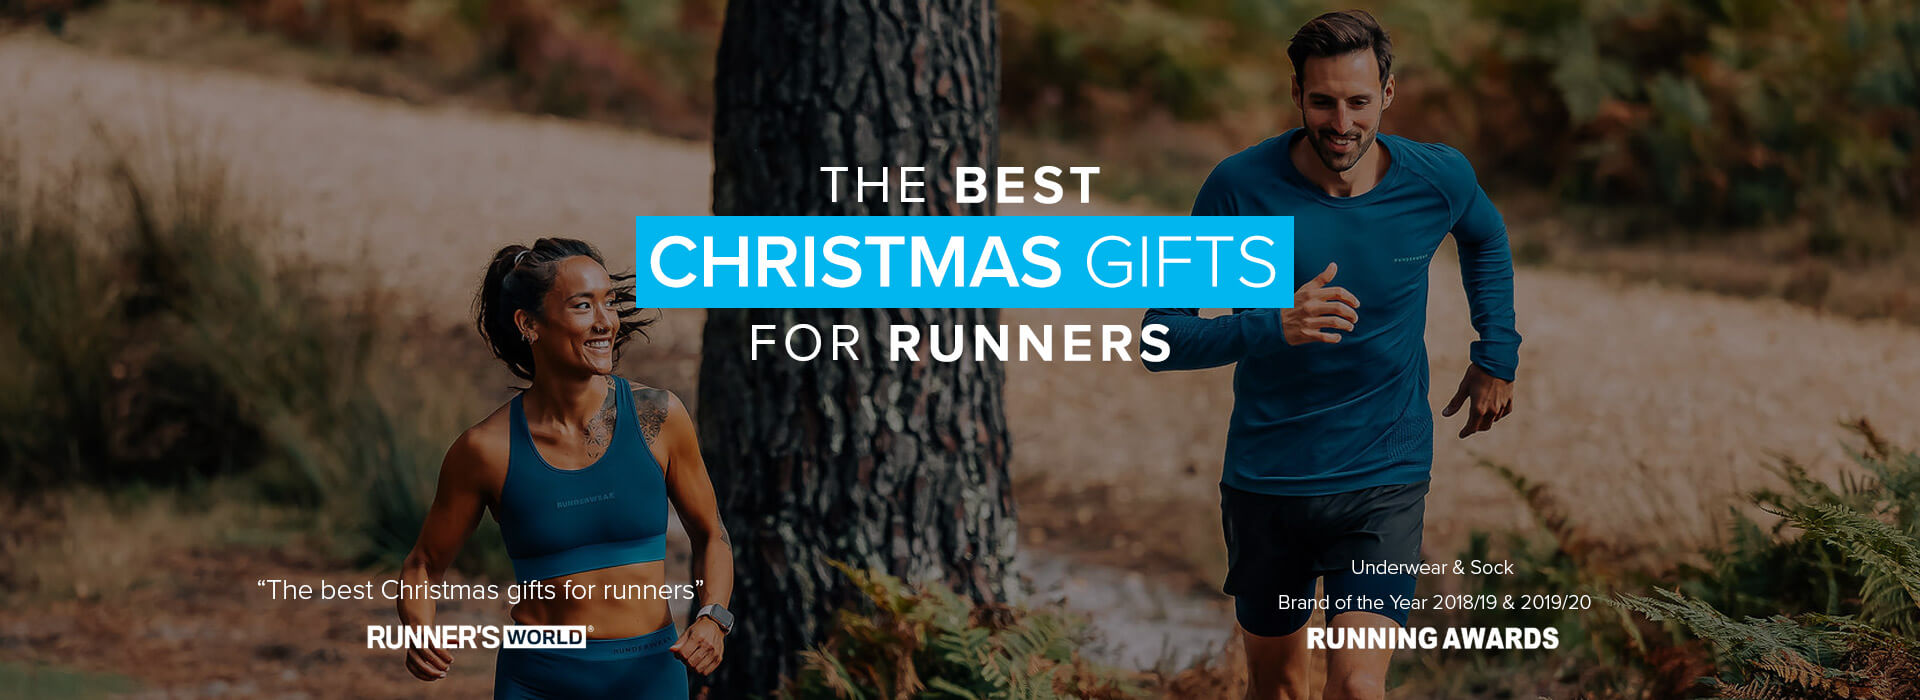 The Best Christmas Gifts for Runners